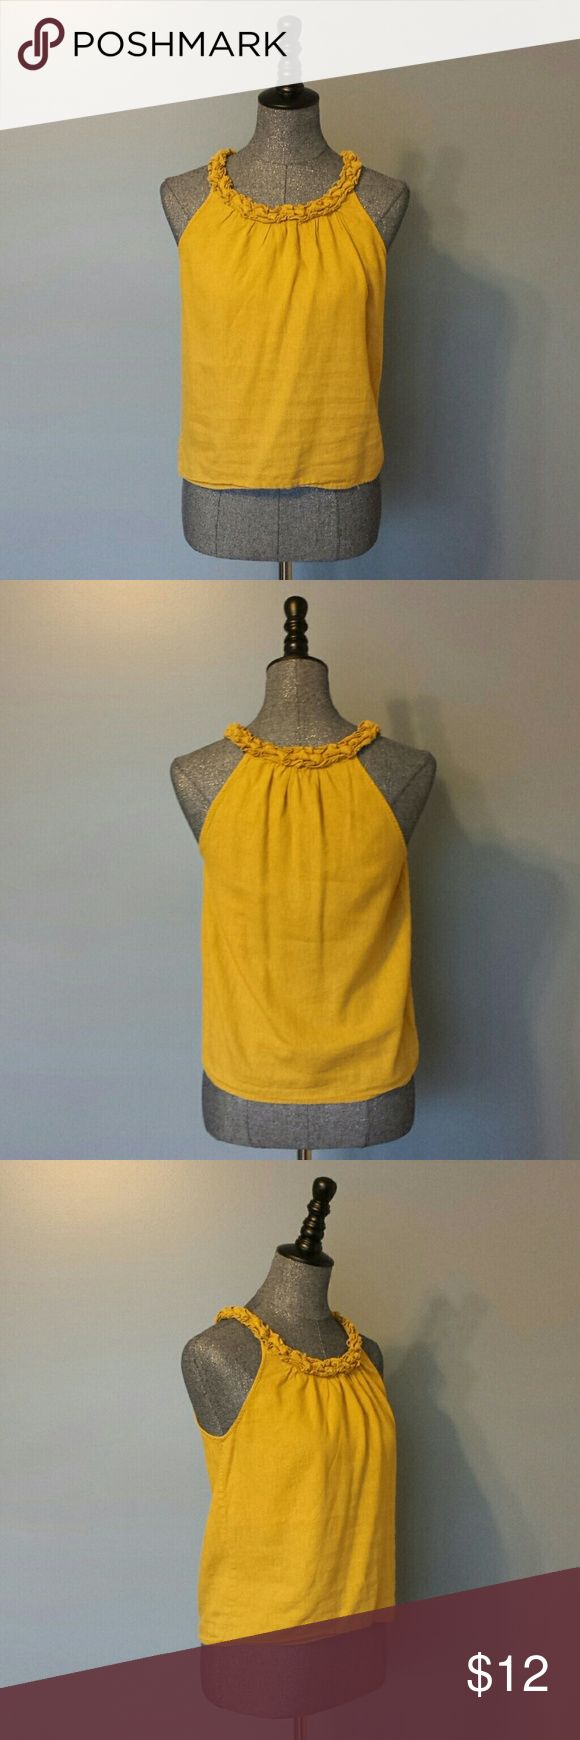 ❤ Carole Little | Mustard Yellow Short Sleeve Top This is a gently worn mustard yellow sleeveless top by Carole Little.  It is petite small in size.  The gathered fabric around the neckline is very unique and special to this design... it works well with the way the shoulders are cut.  55% Linen 45% Rayon Carole Little Tops